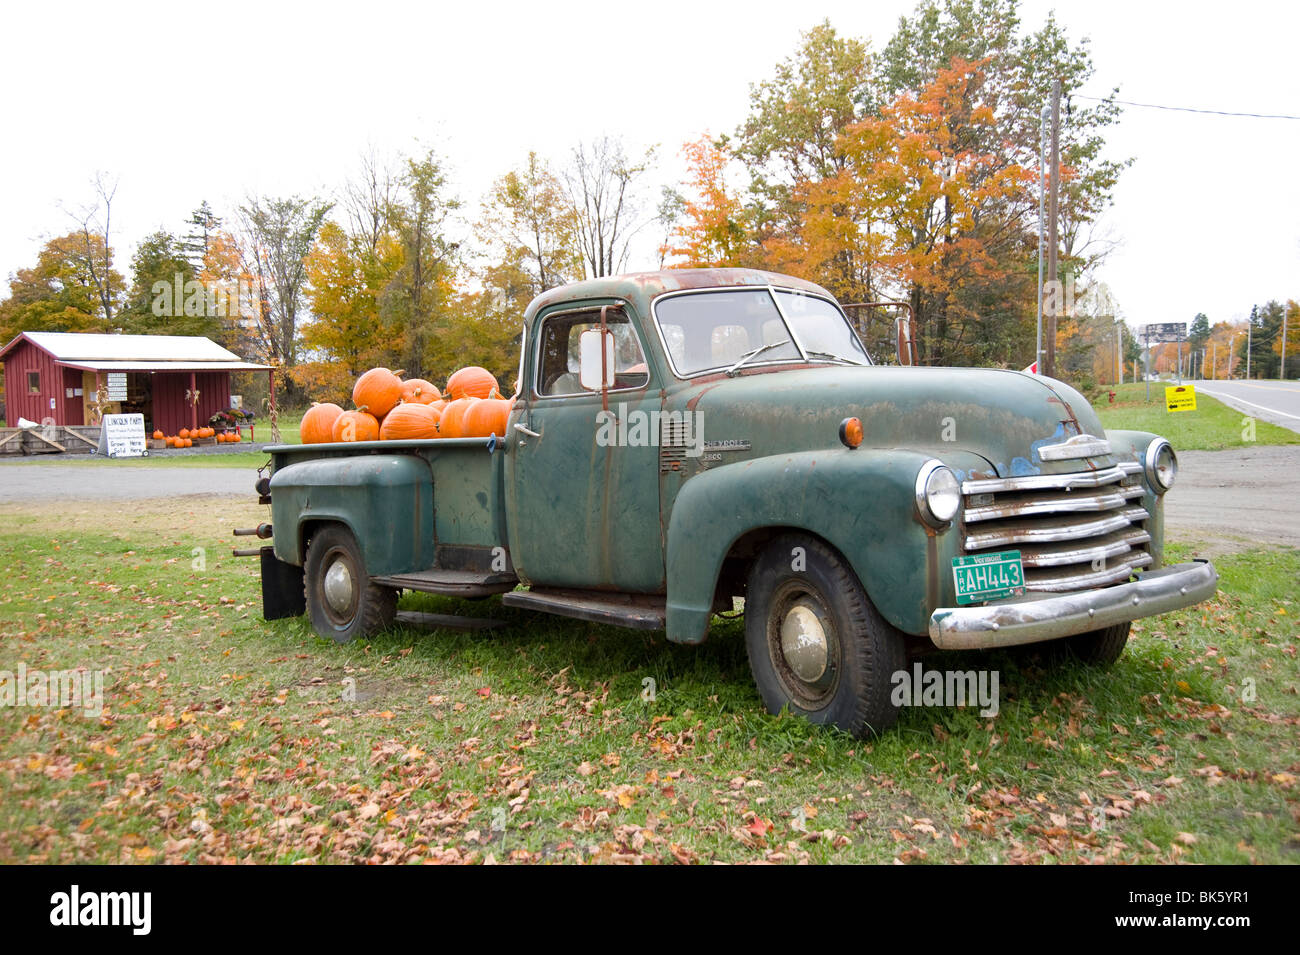 Pumpkins for sale in an old Chevrolet pickup truck at a roadside ...